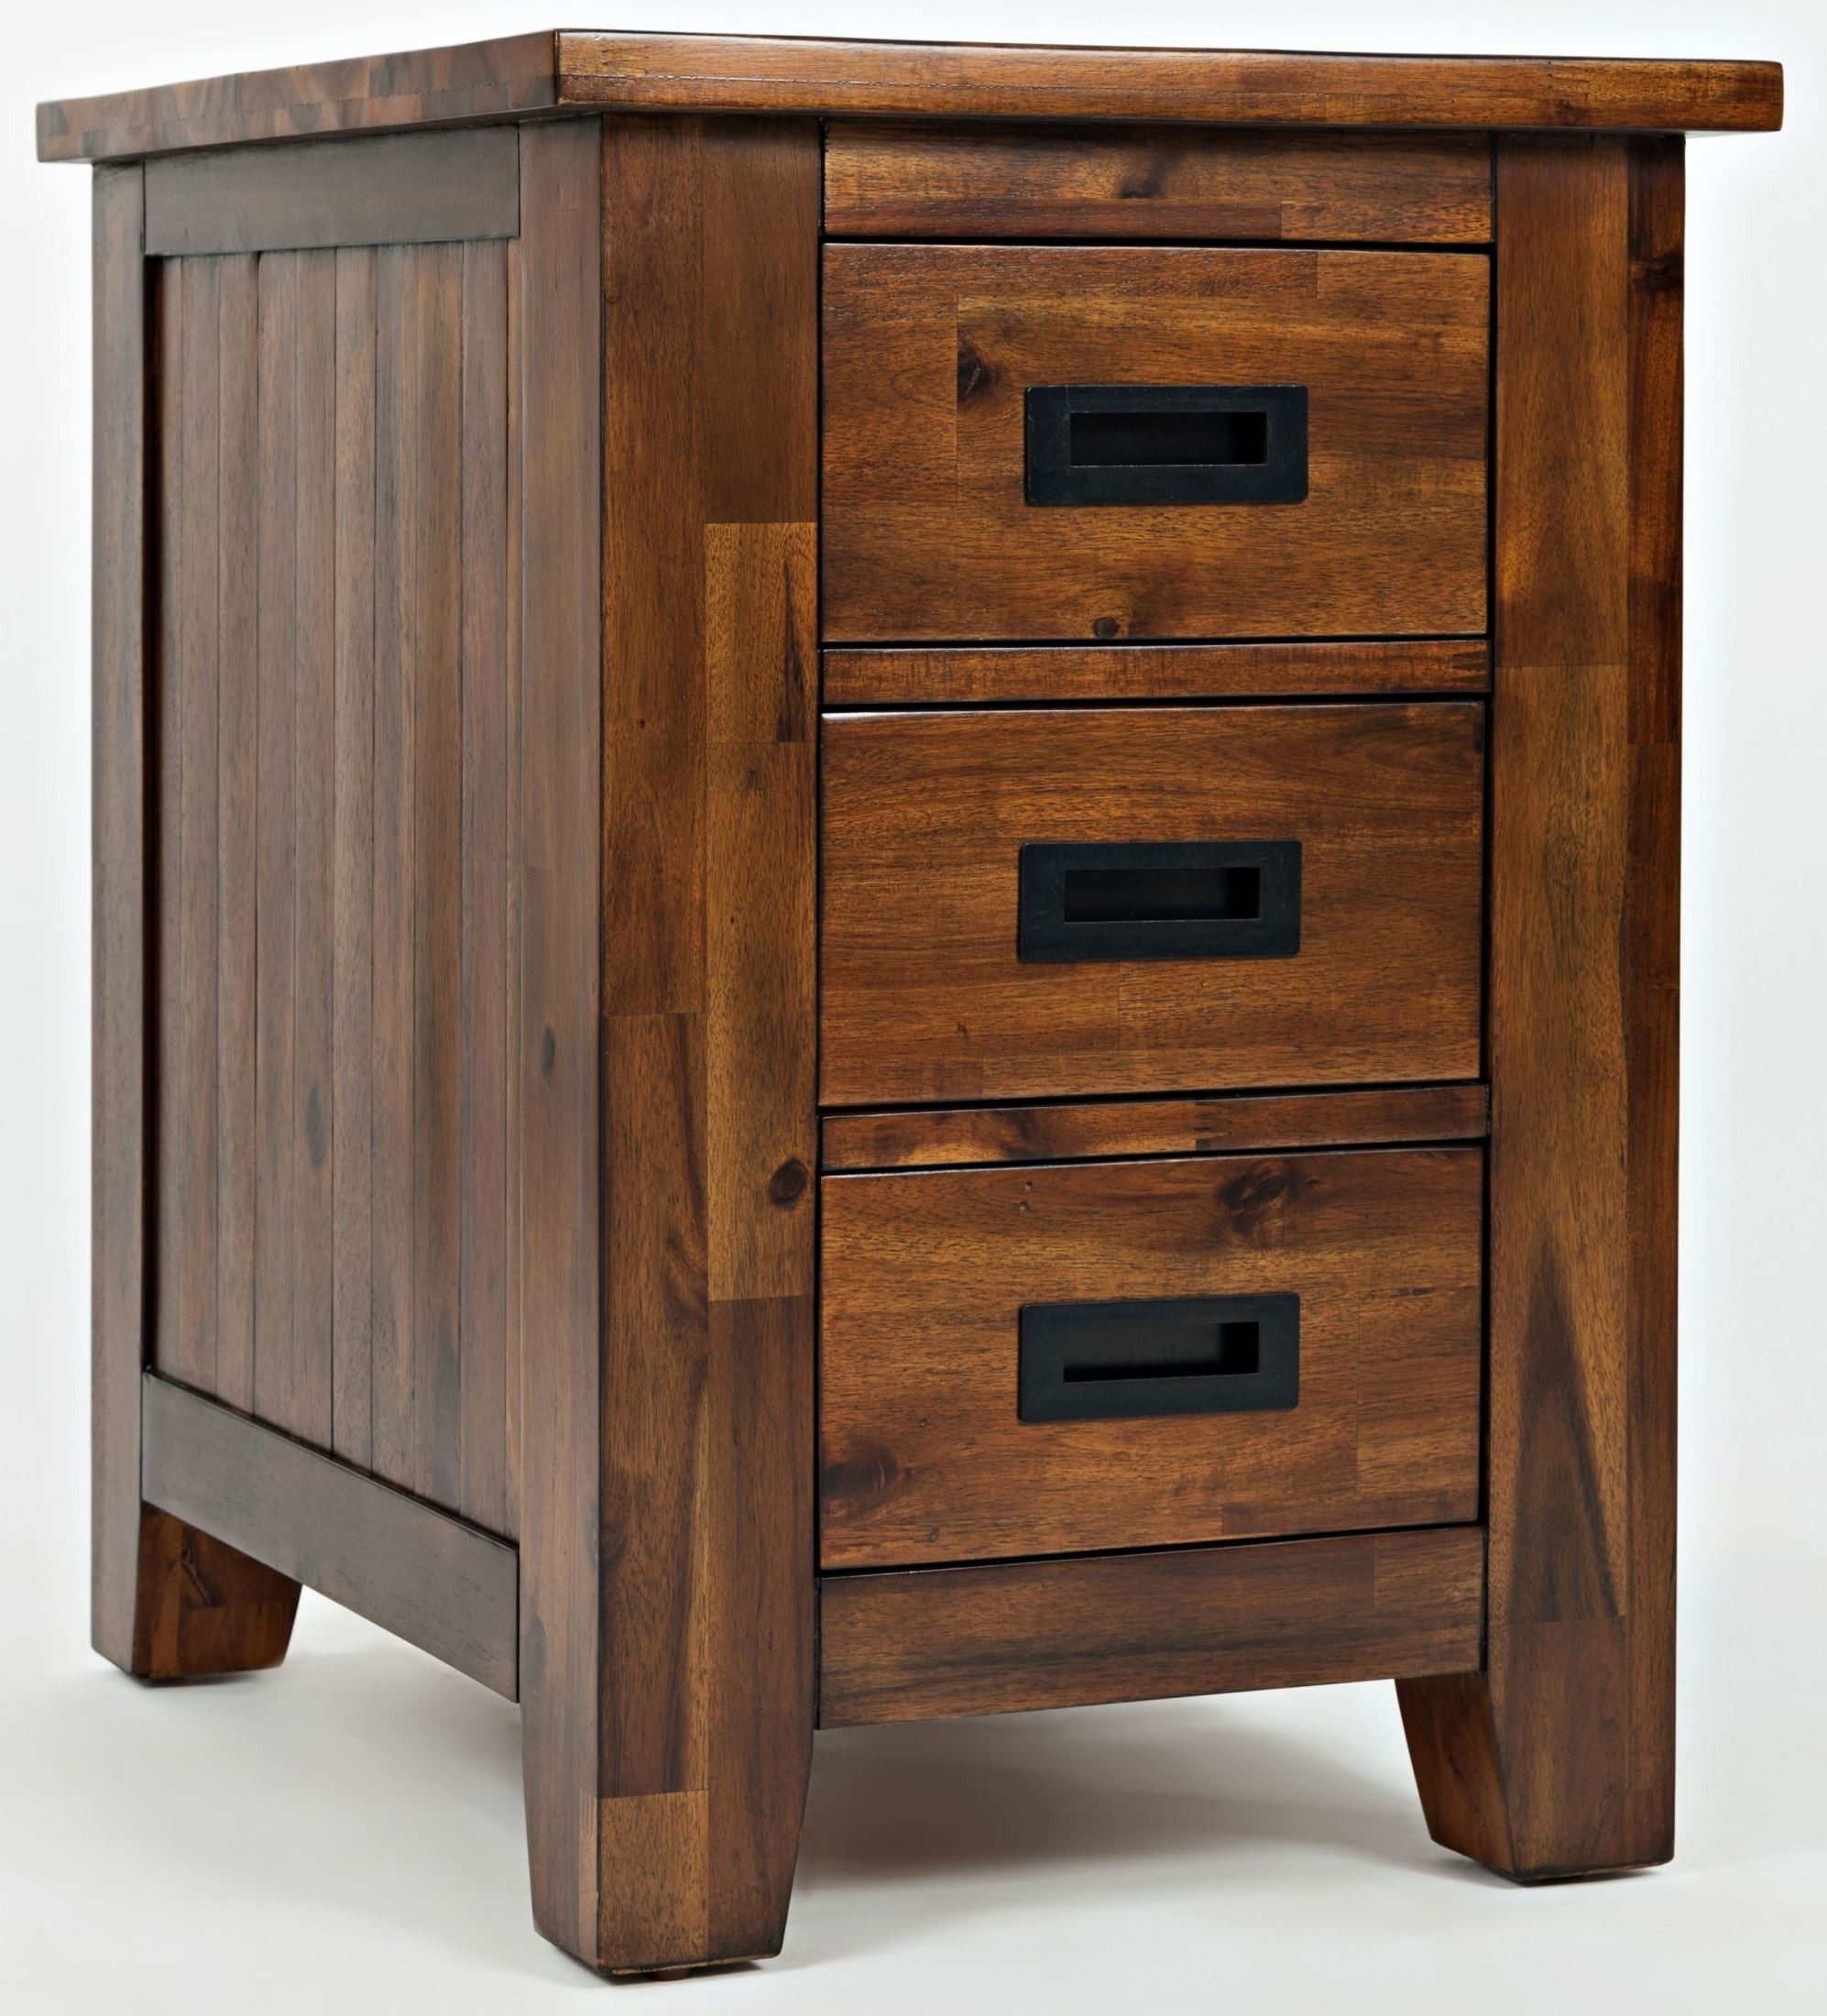 Coolidge corner 3 drawer occasional table set 1500 1 jofran for Occasional table with drawers